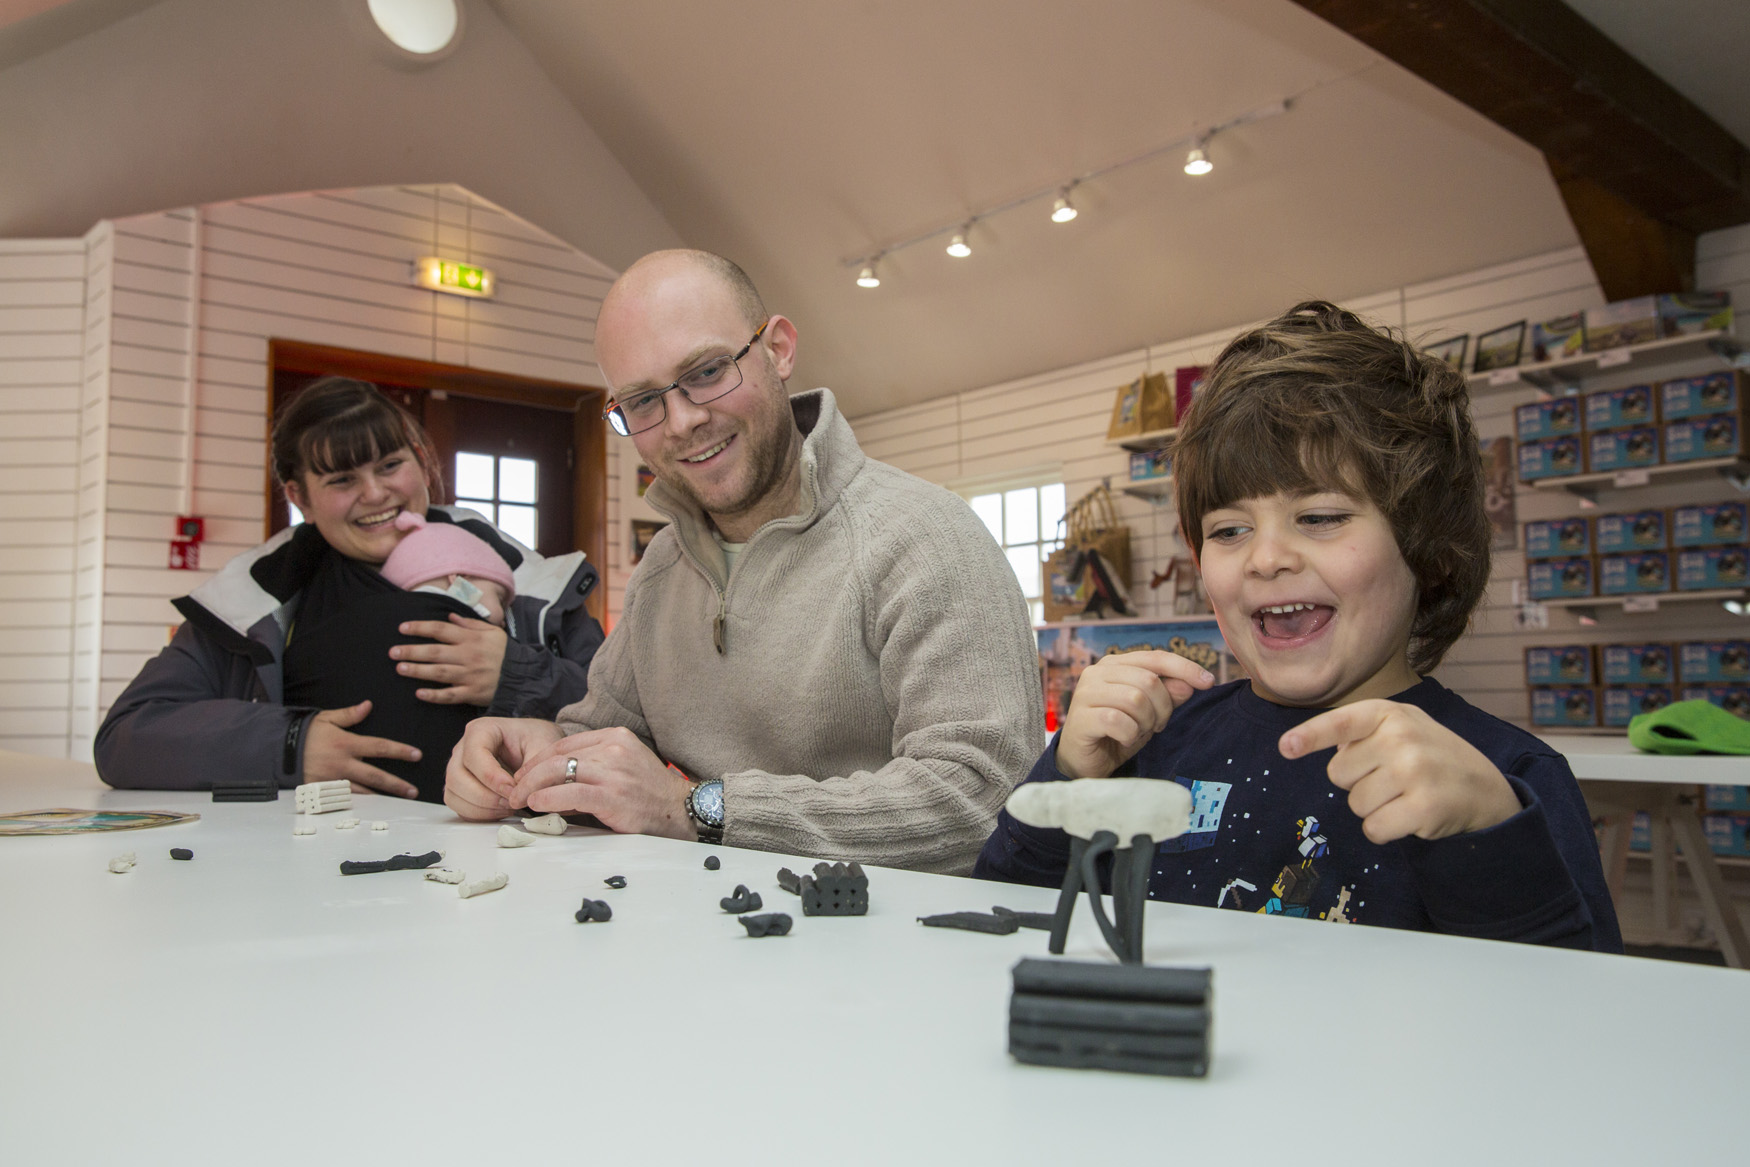 Eddie Smith, aged 5, from Redruth makes his own model of Shaun